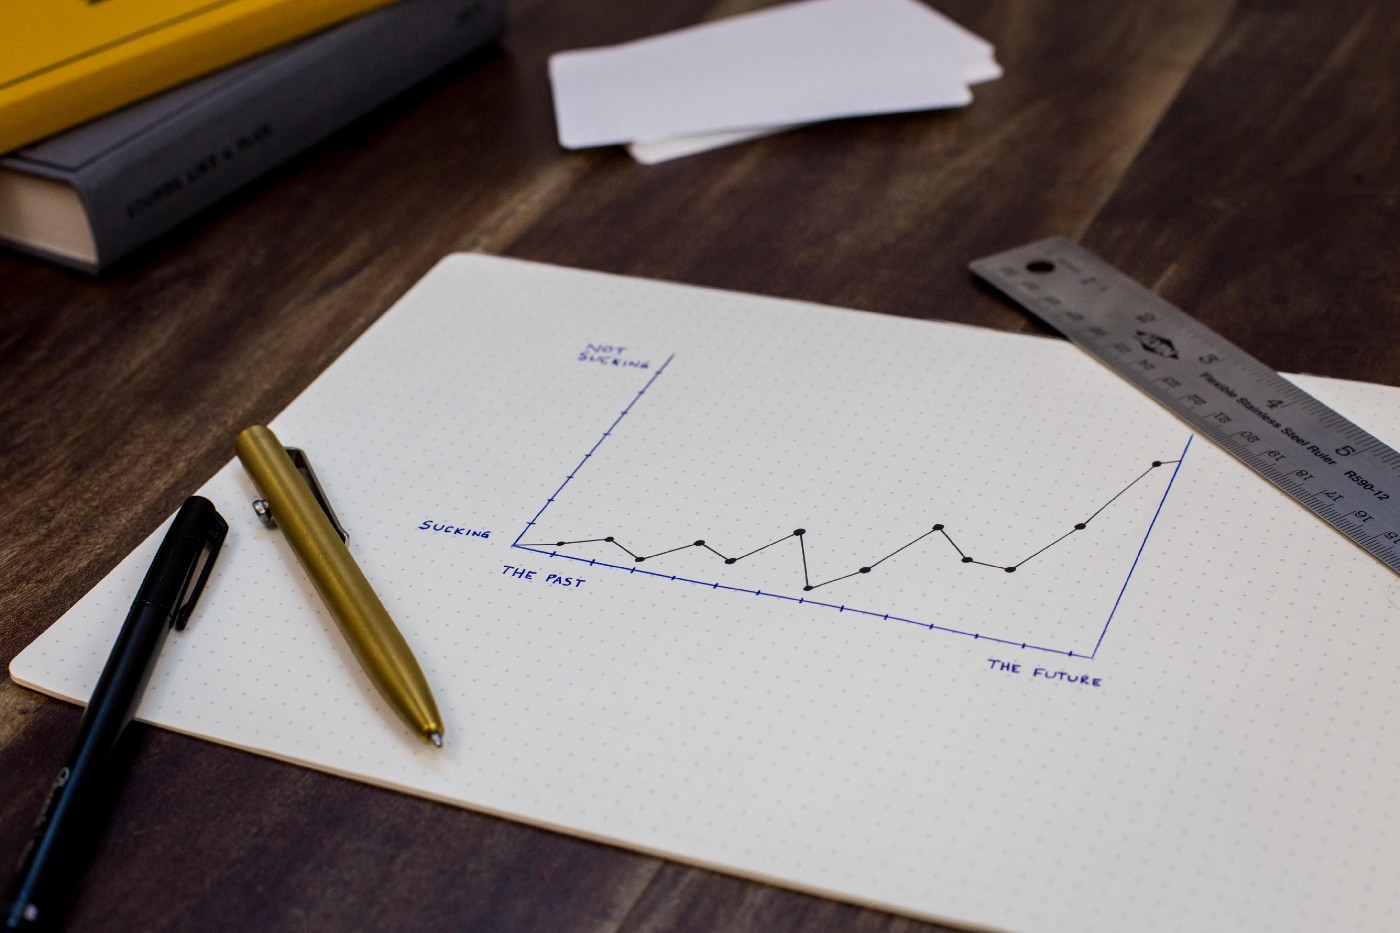 """Line graph plotting an upward progression from """"sucking"""" to """"not sucking"""" as time moves forward."""